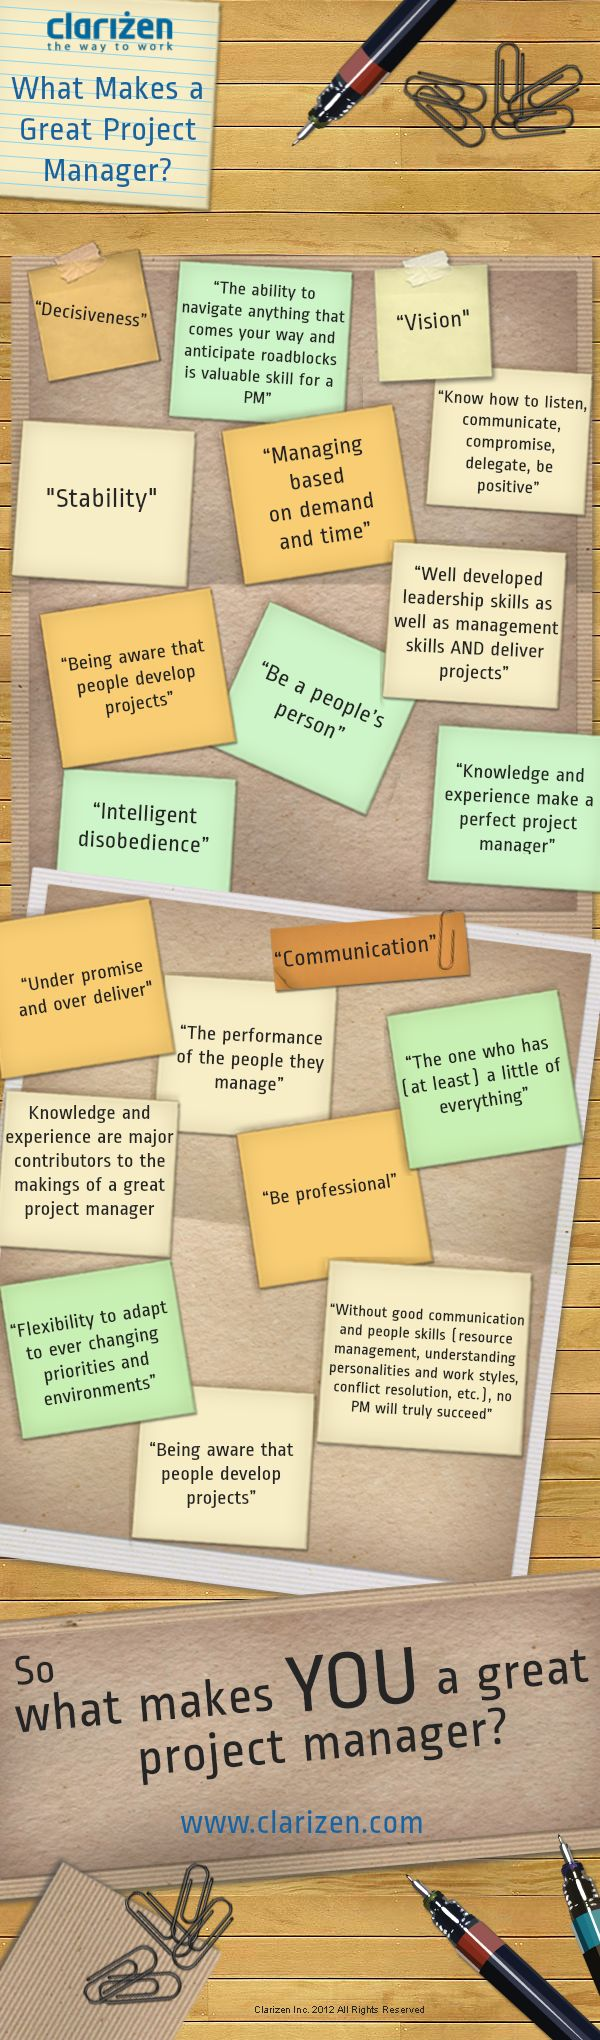 What Makes a Great Project Manager?  Follow JAMSO also on Twitter @jamsovaluesmart and find out news and updates on goal setting and KPI's on http://www.jamsovaluesmarter.com